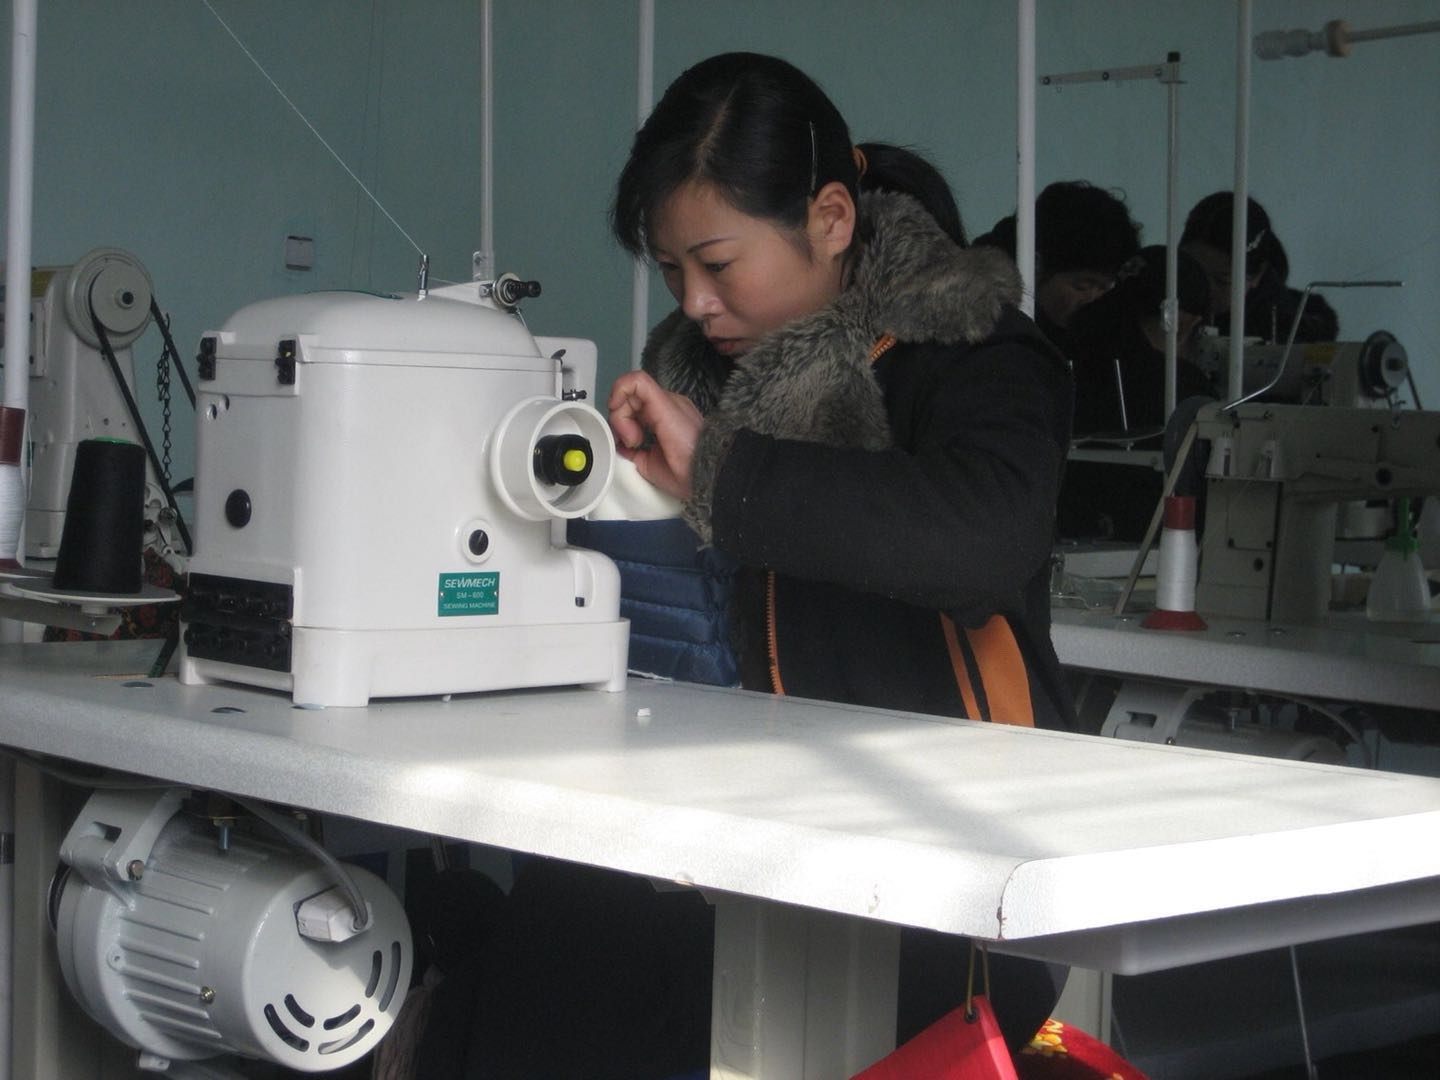 North Korean Woman Working in a Foreign-Owned Company in North Korea